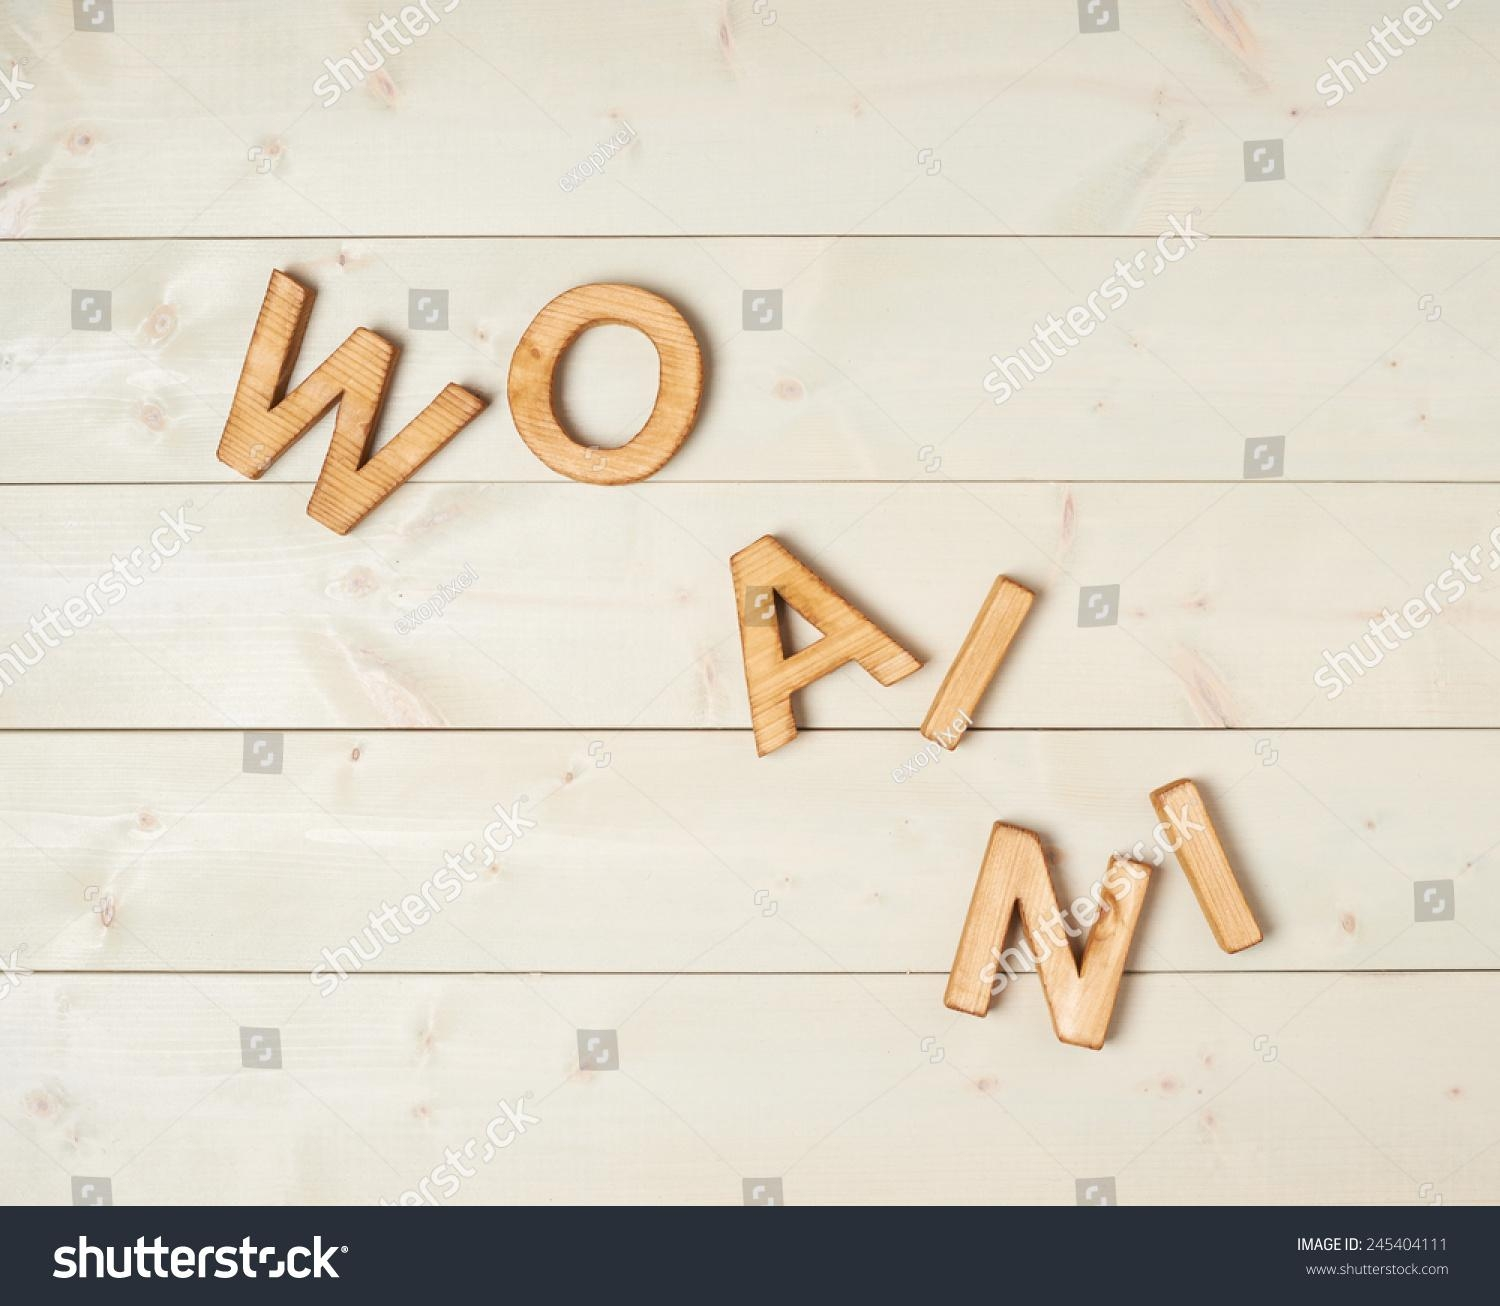 Wo Ai Ni Meaning Love You Stock Photo 245404111 – Shutterstock With Regard To Wo Ai Ni In Chinese Wall Art (Image 18 of 20)